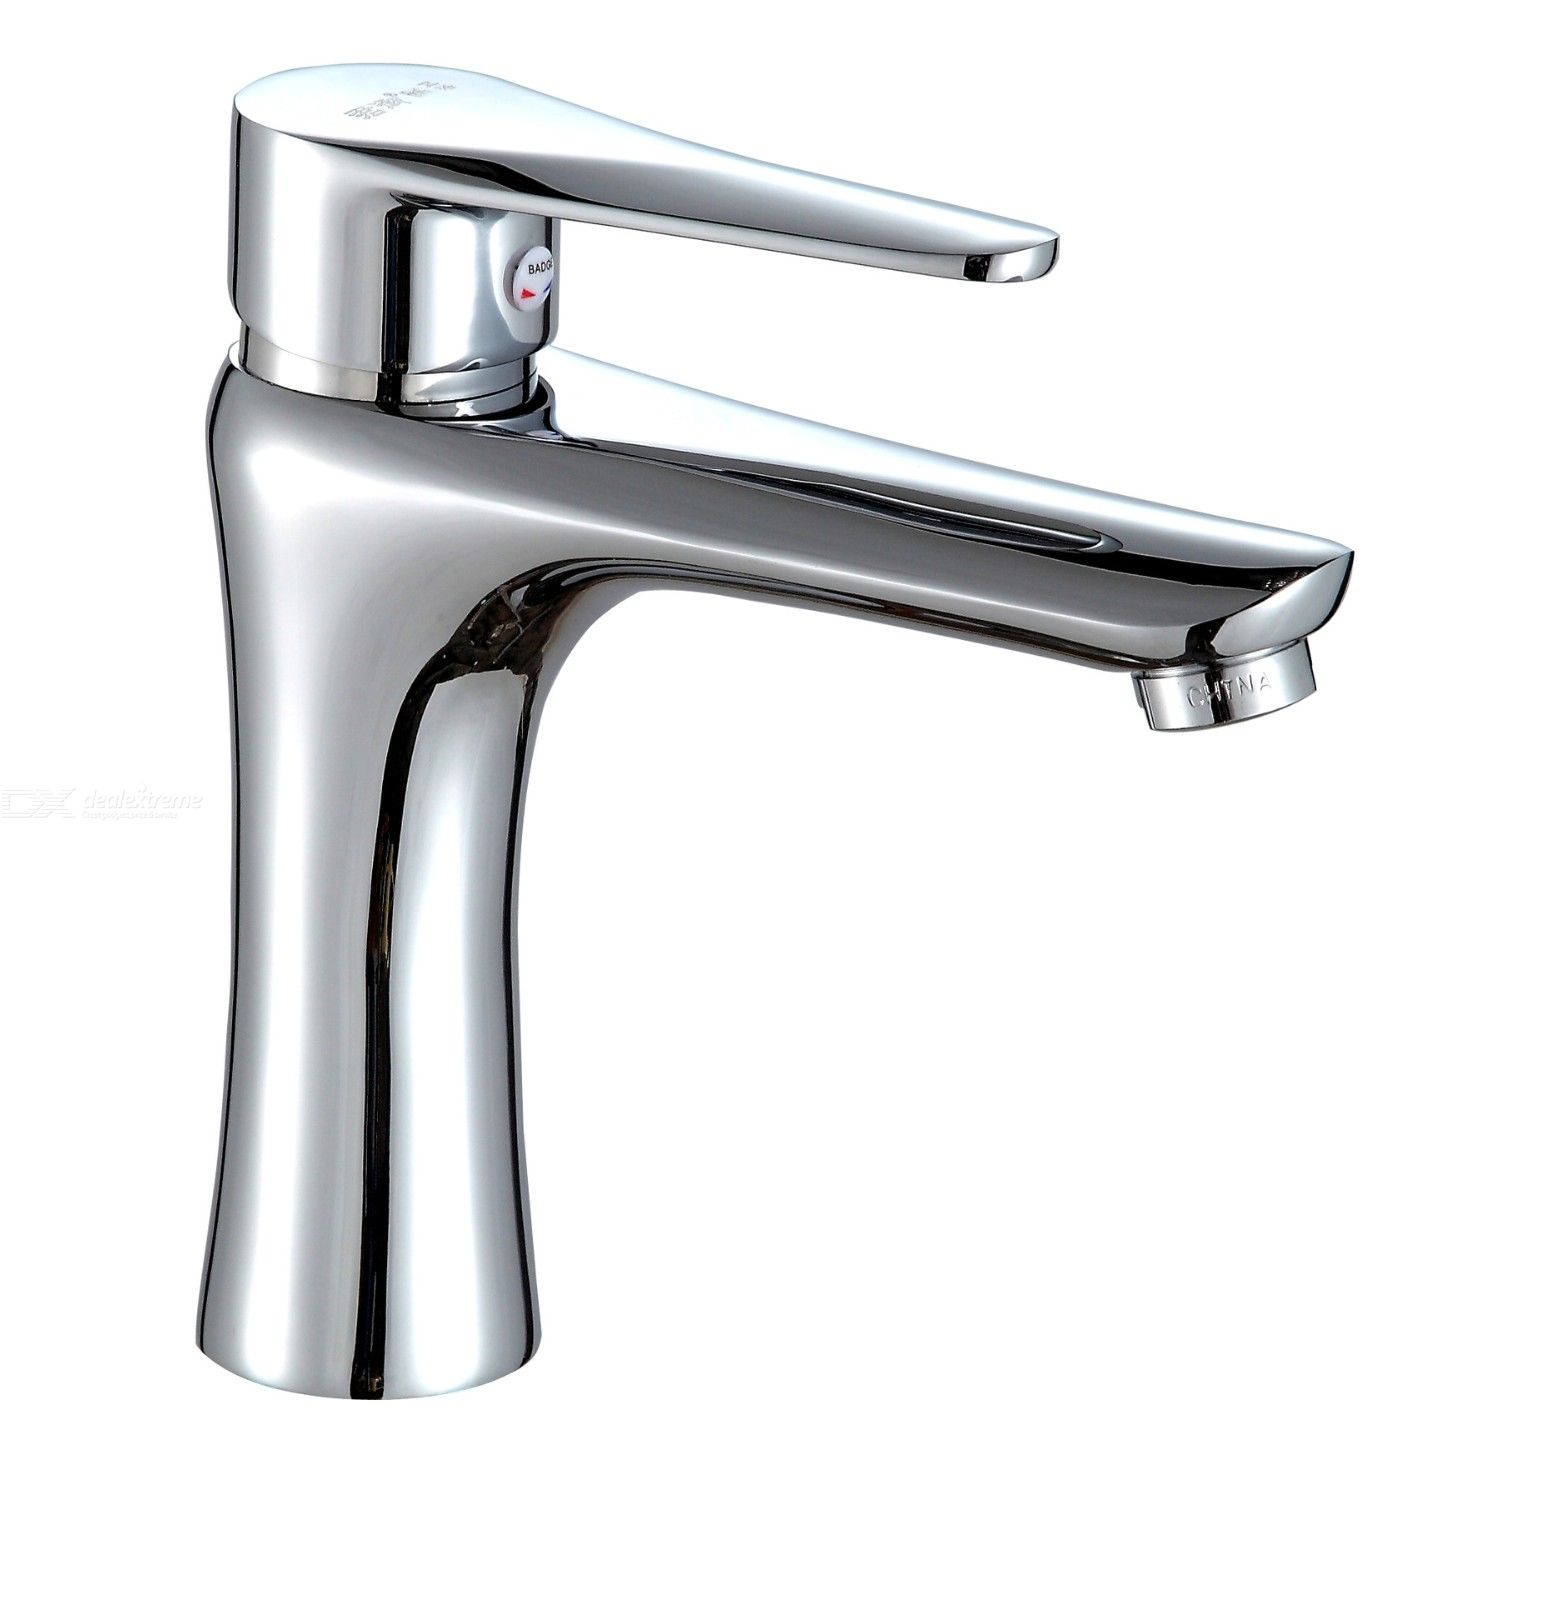 Bathroom Sink Faucet Single Handle Single Hole Bathroom Sink Mixer Tap Cold And Hot Water Available Faucet